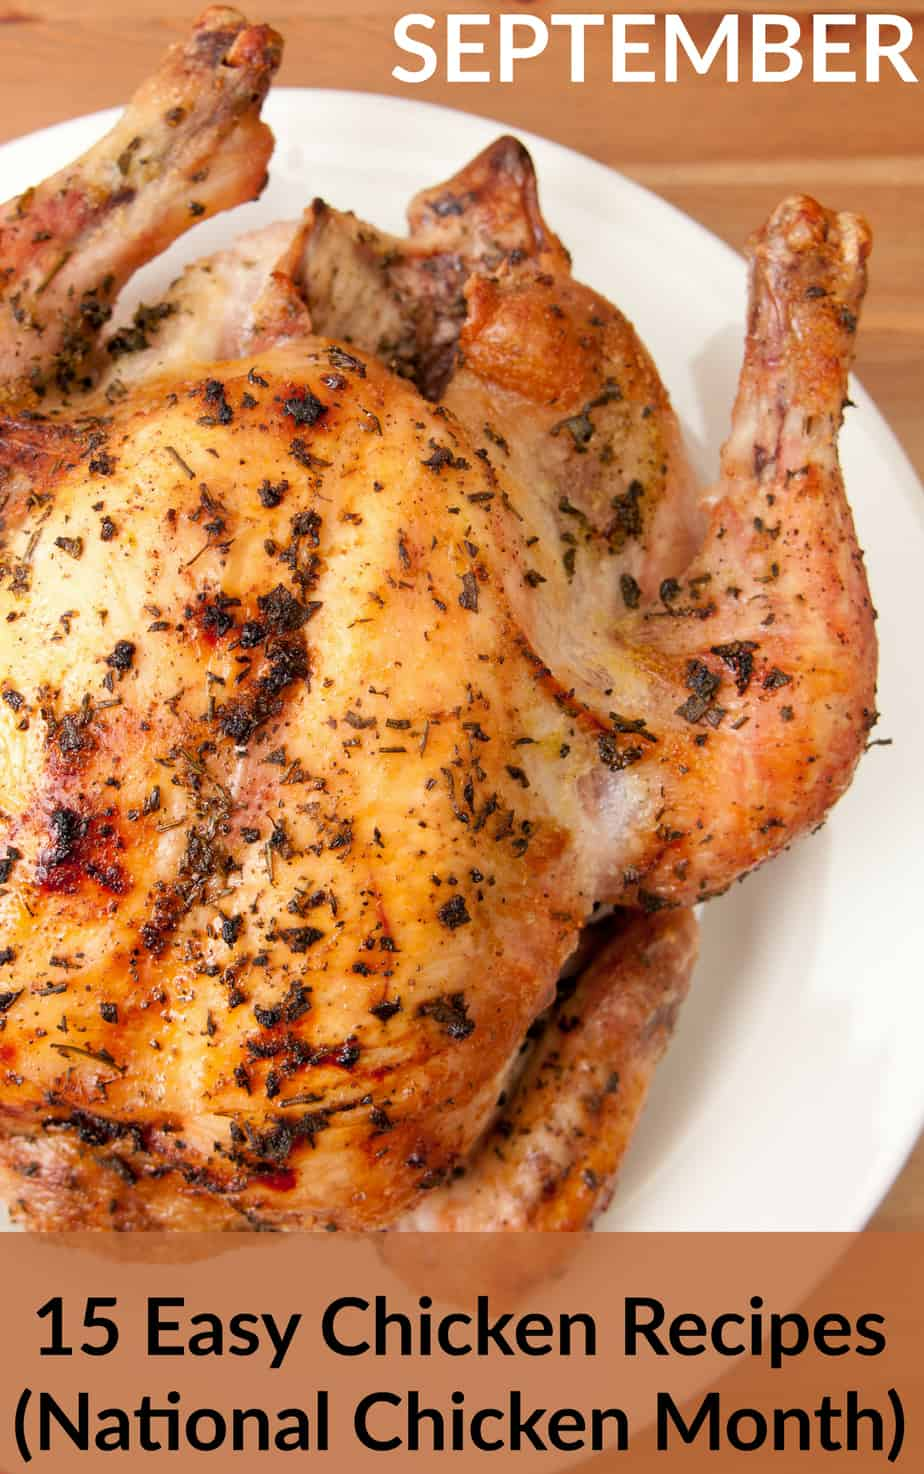 15 Easy Chicken Recipes to Make for National Chicken Month